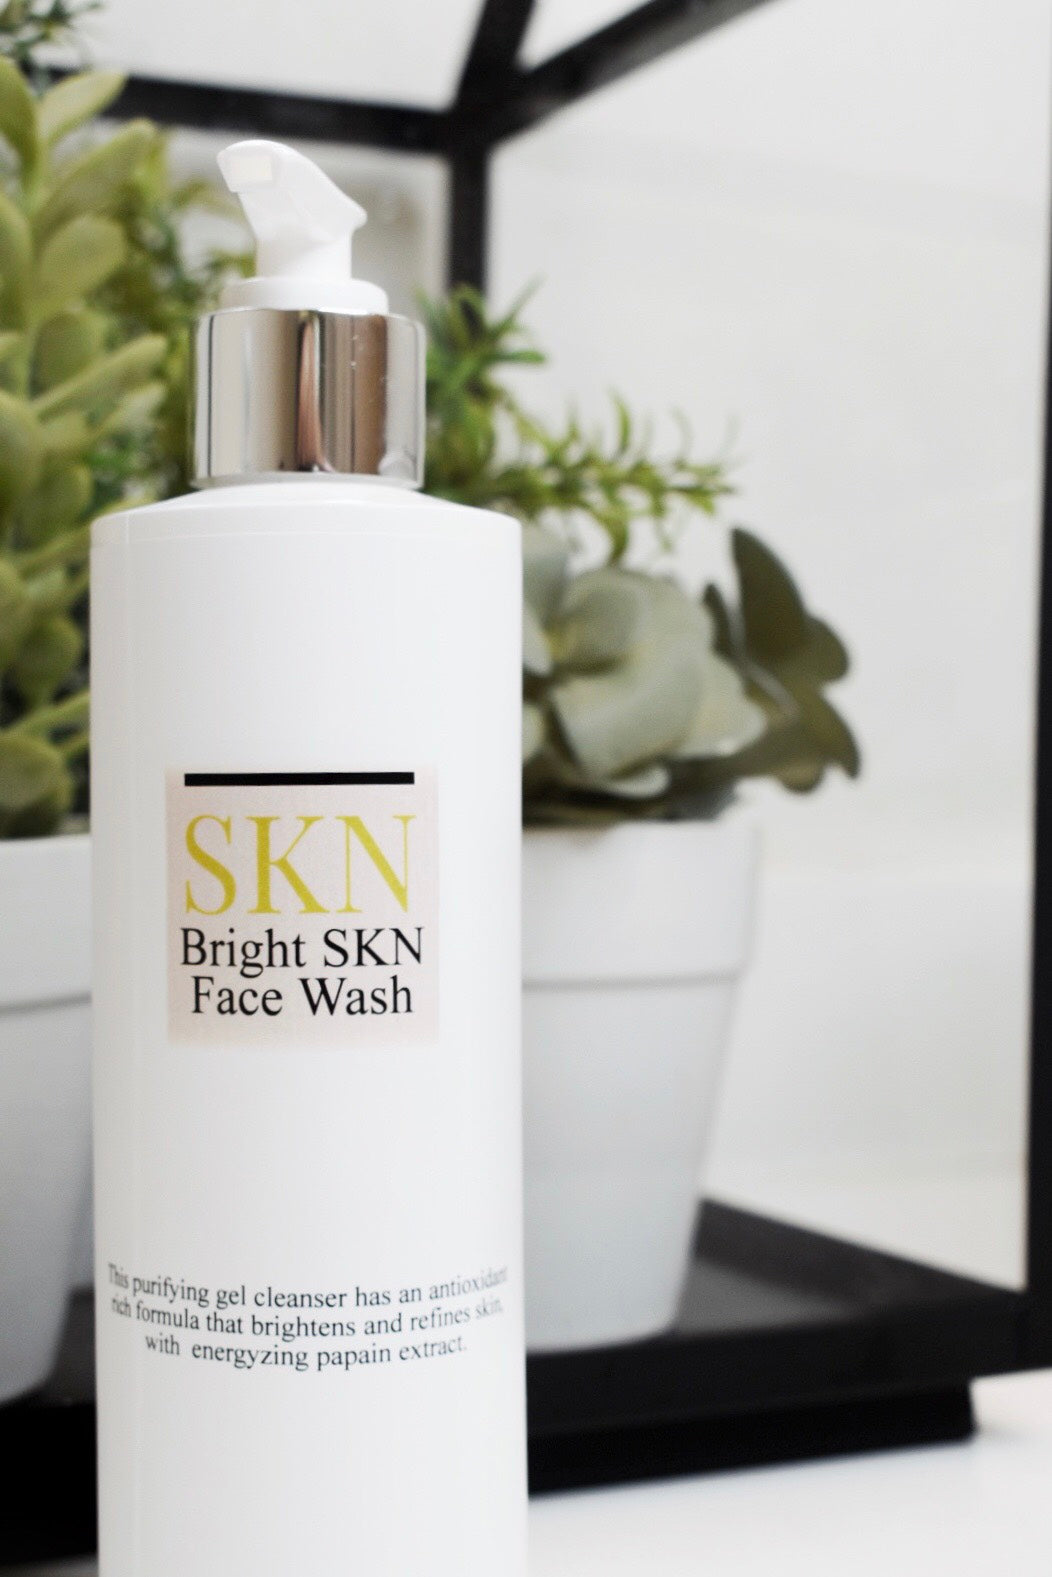 Bright SKN Face Wash